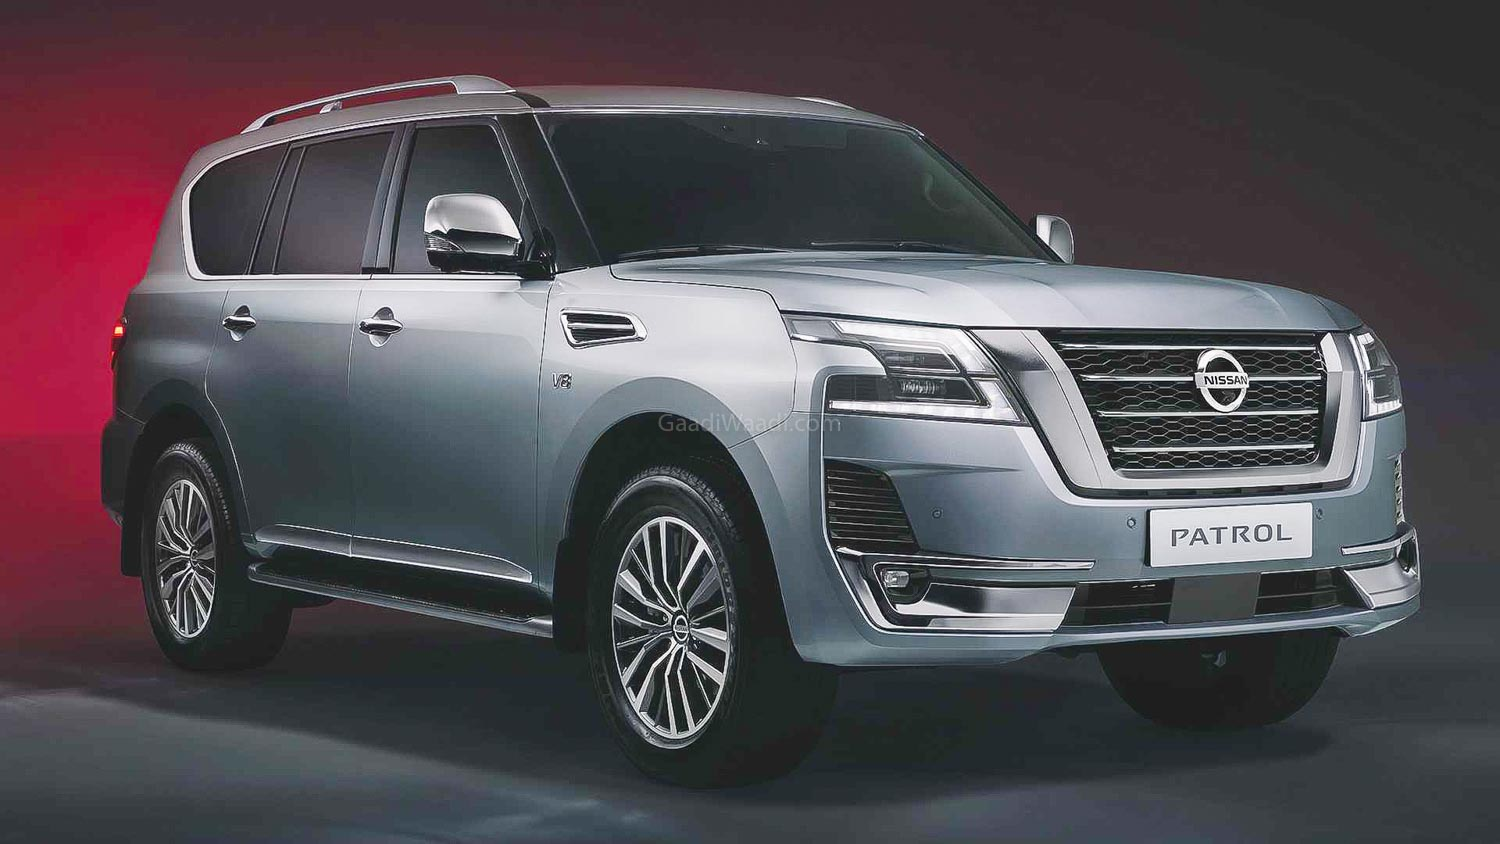 2020 Nissan Patrol SUV Launch Expected In India As A CBU – Report